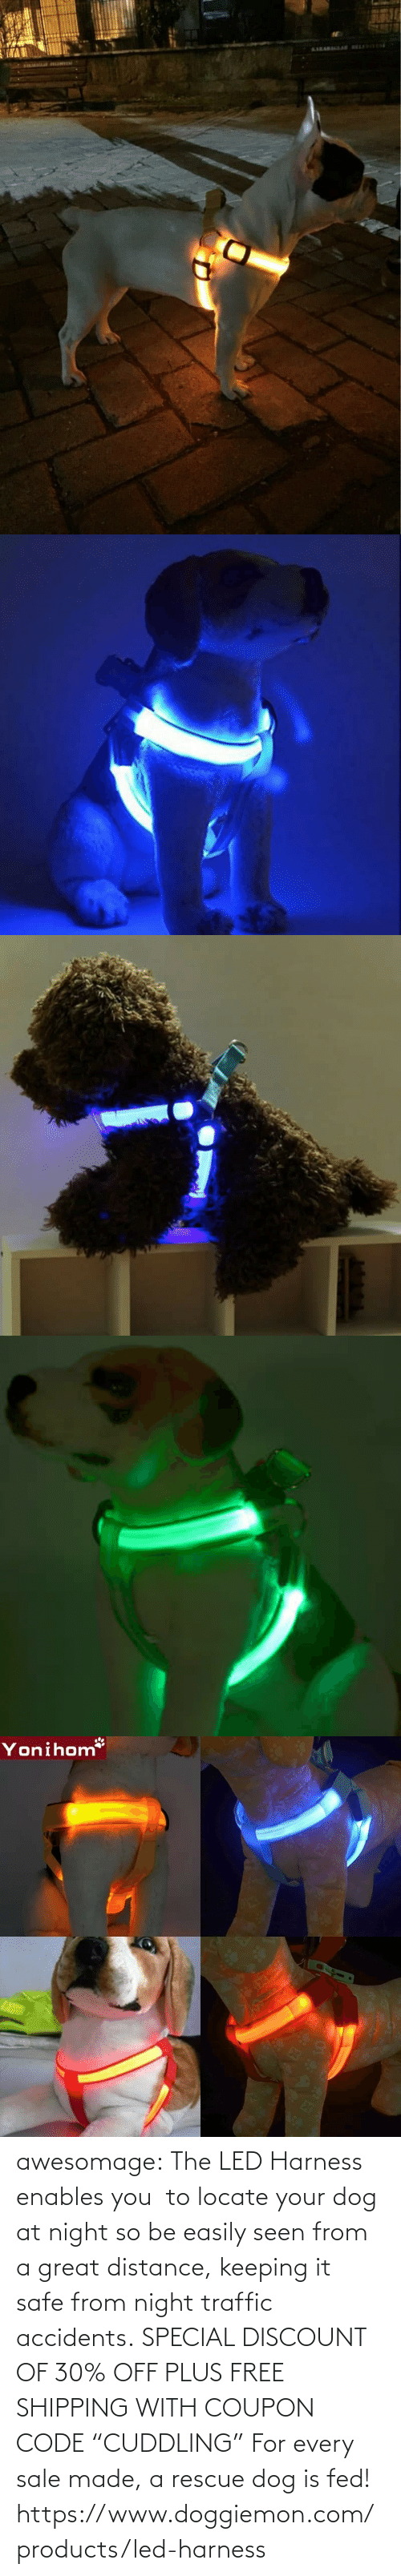 "Off: awesomage:   The LED Harness enables you  to locate your dog at night so be easily seen from a great distance, keeping it safe from night traffic accidents. SPECIAL DISCOUNT OF 30% OFF PLUS FREE SHIPPING WITH COUPON CODE ""CUDDLING"" For every sale made, a rescue dog is fed!   https://www.doggiemon.com/products/led-harness"